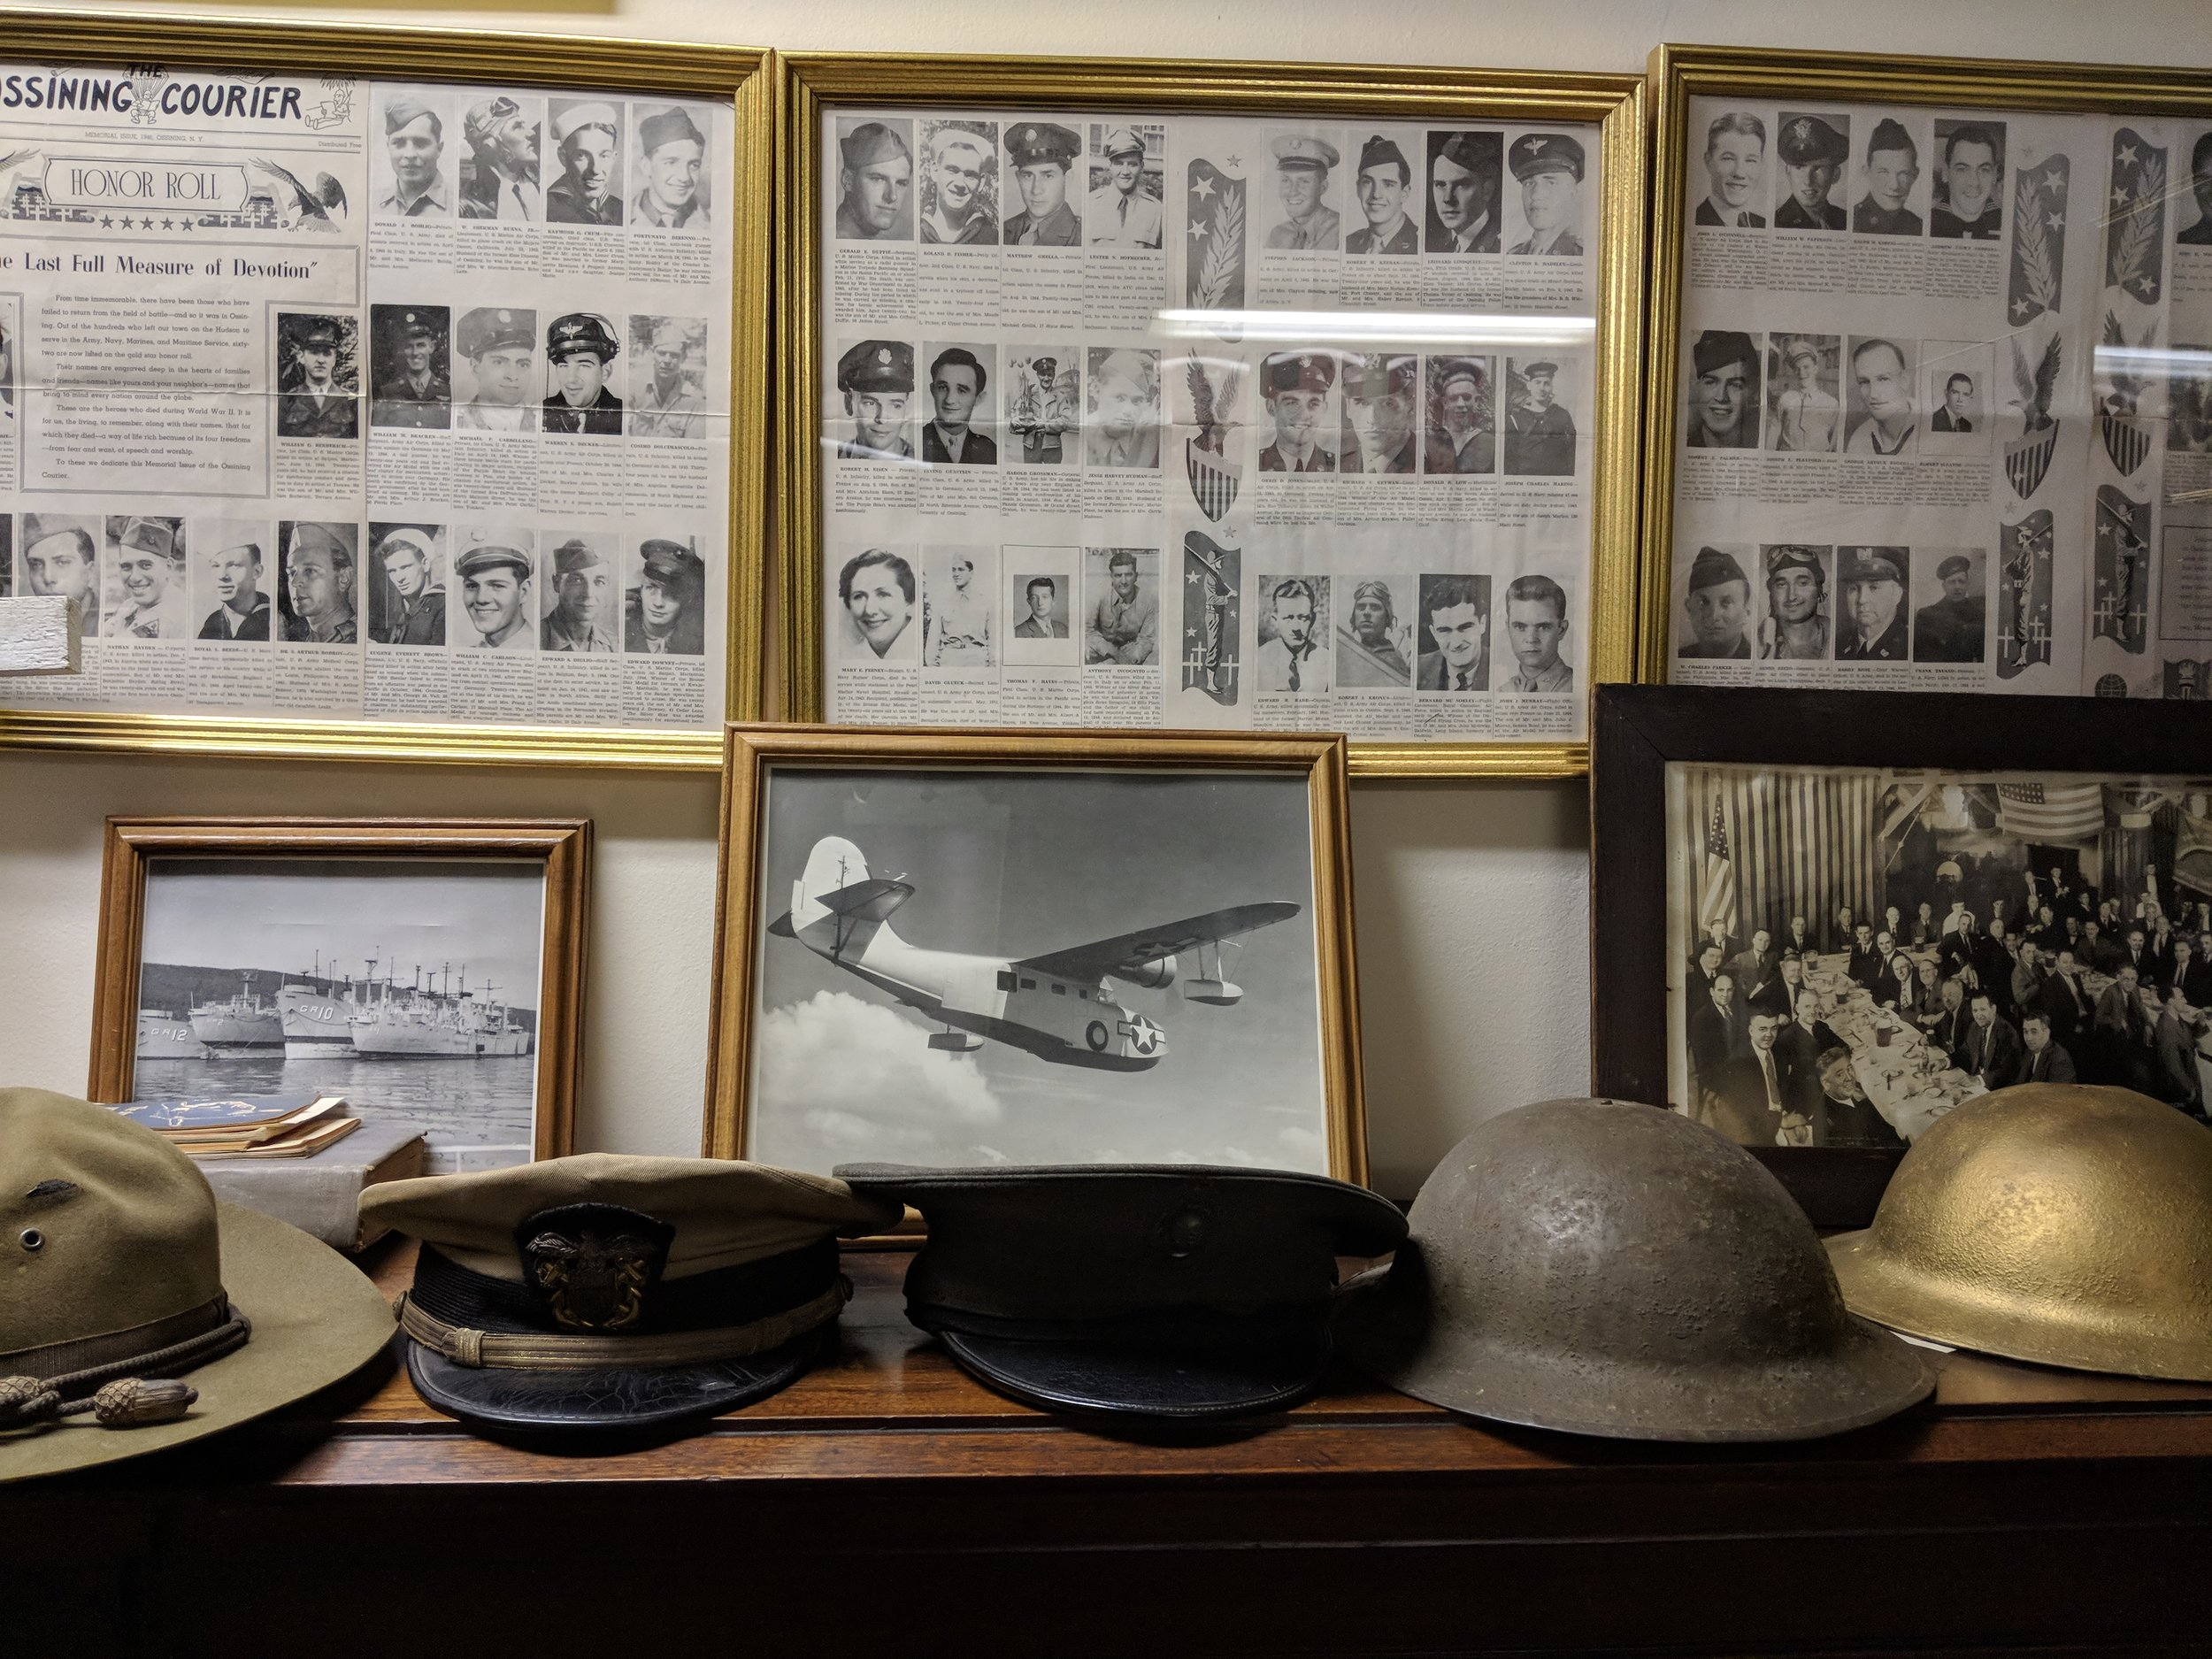 Military Room Display, 2nd Floor